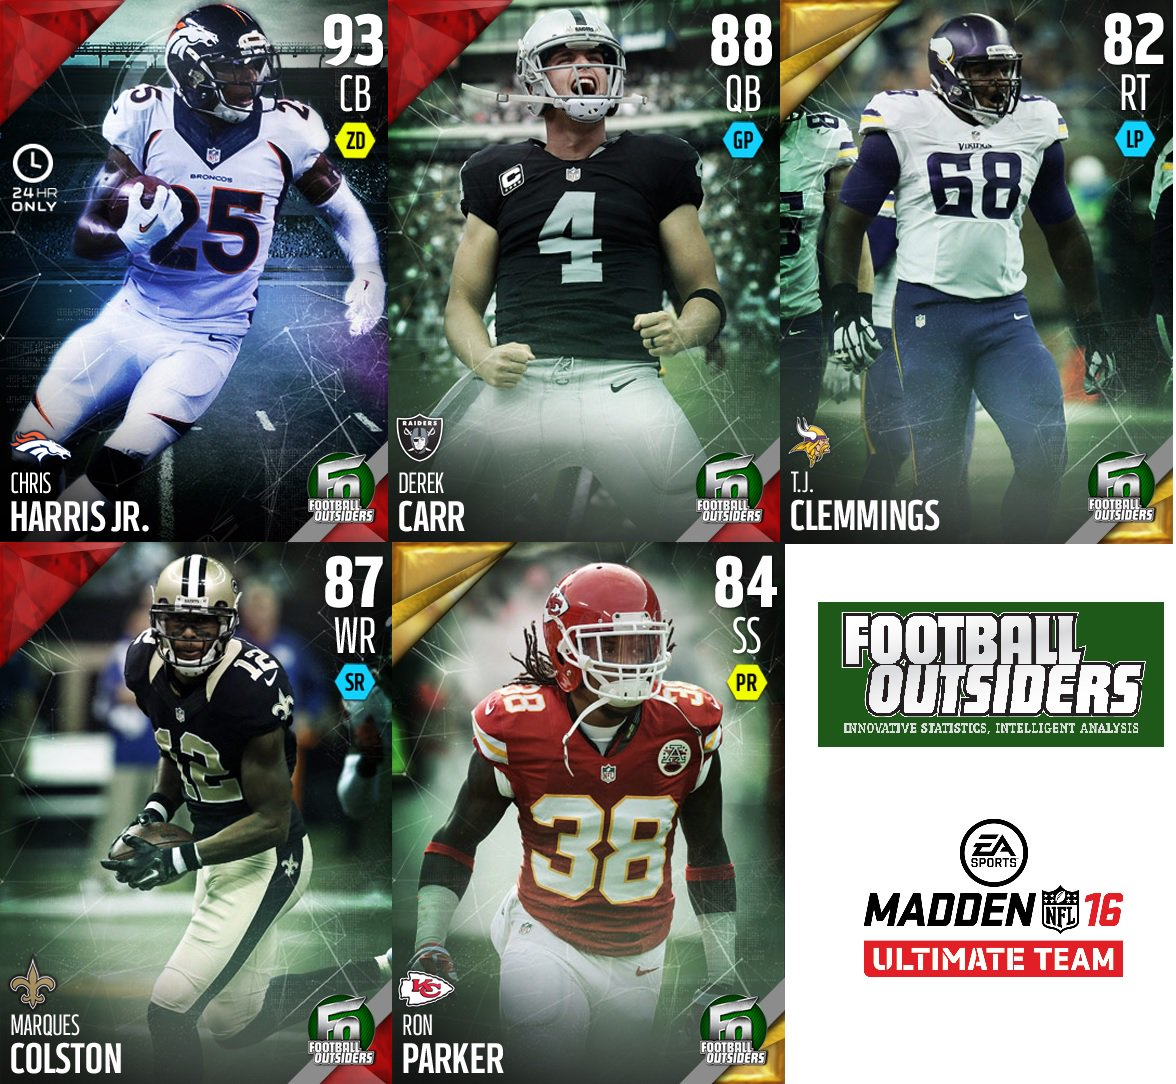 Here's a look at the new FO stars in @EASPORTS_MUT packs starting this morning! https://t.co/ac8bILA0X0